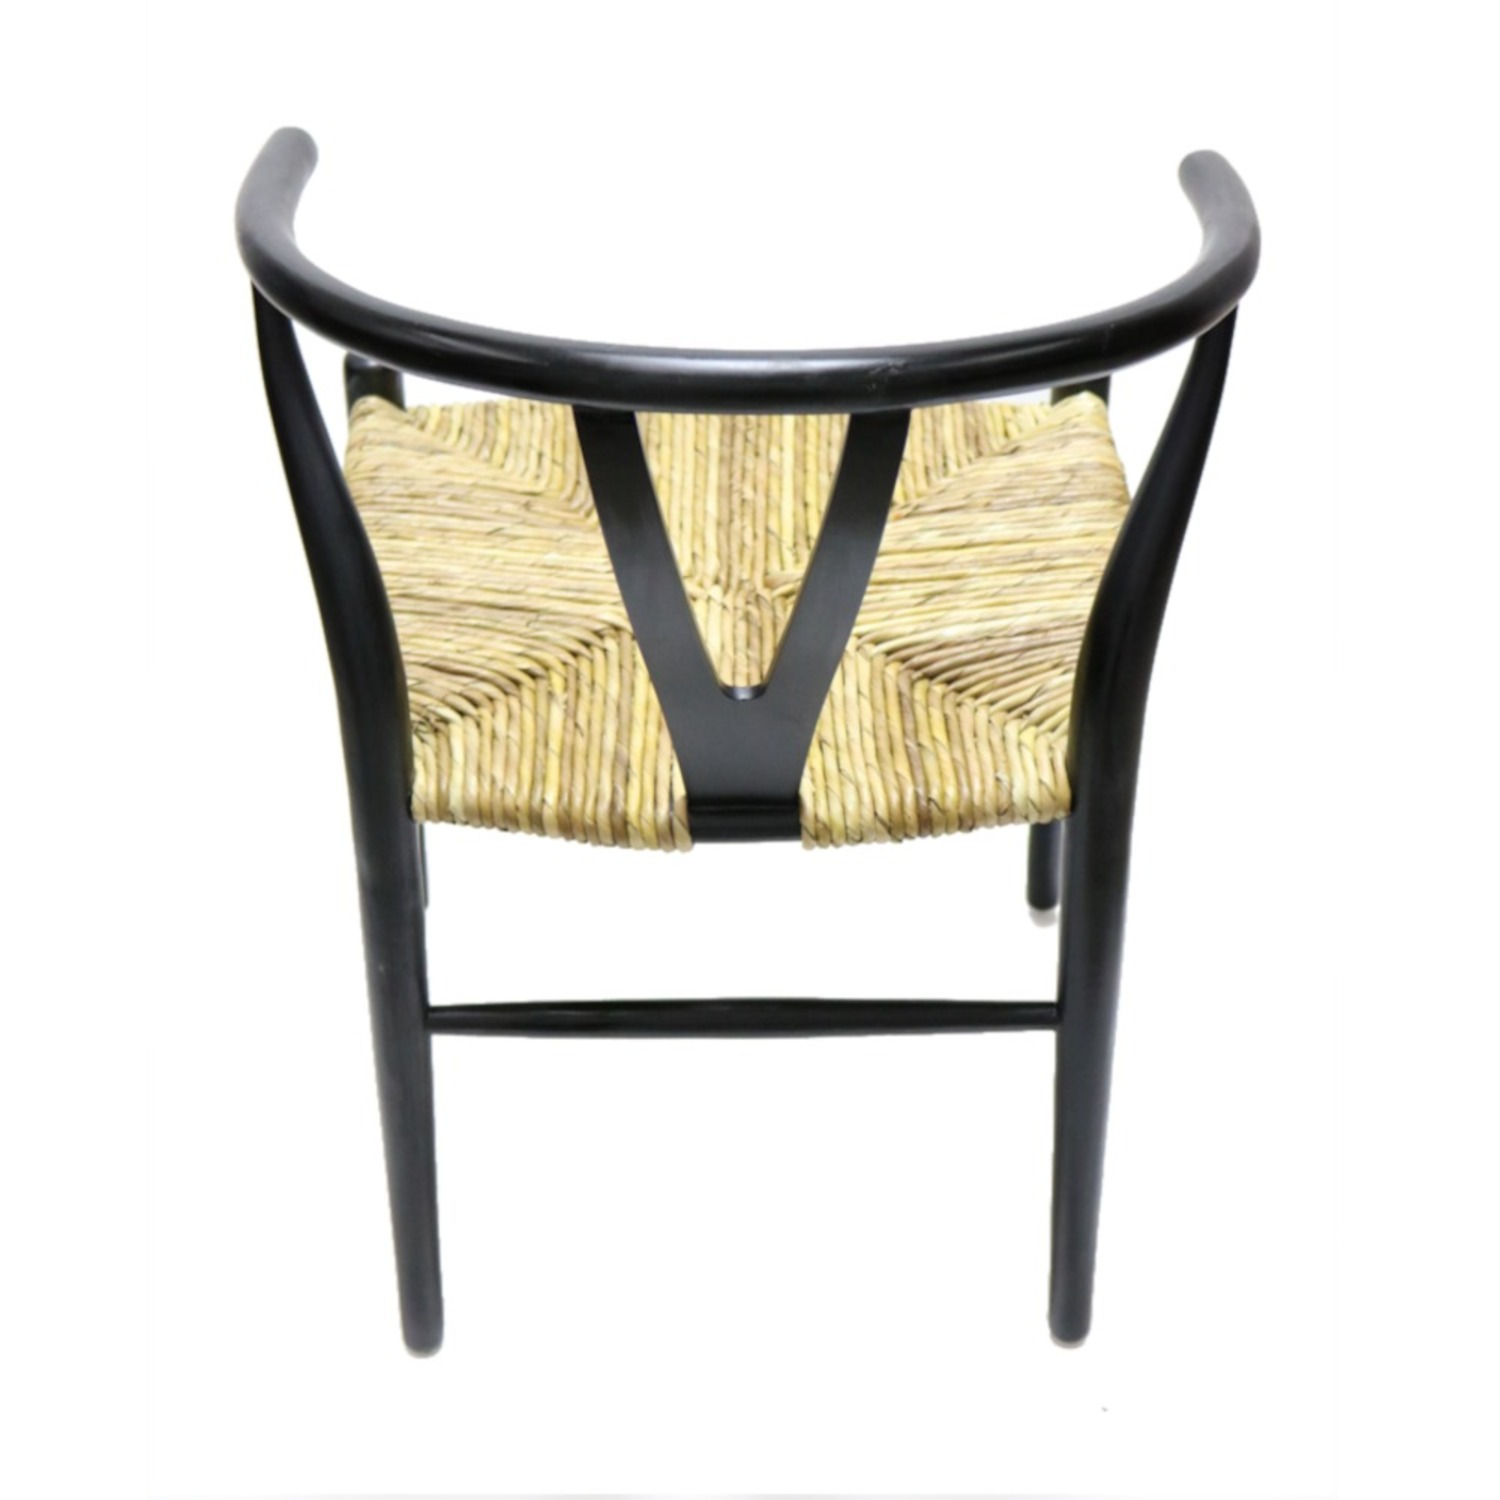 Dining Chair In Black Frame & Natural Hemp Seat - image-6